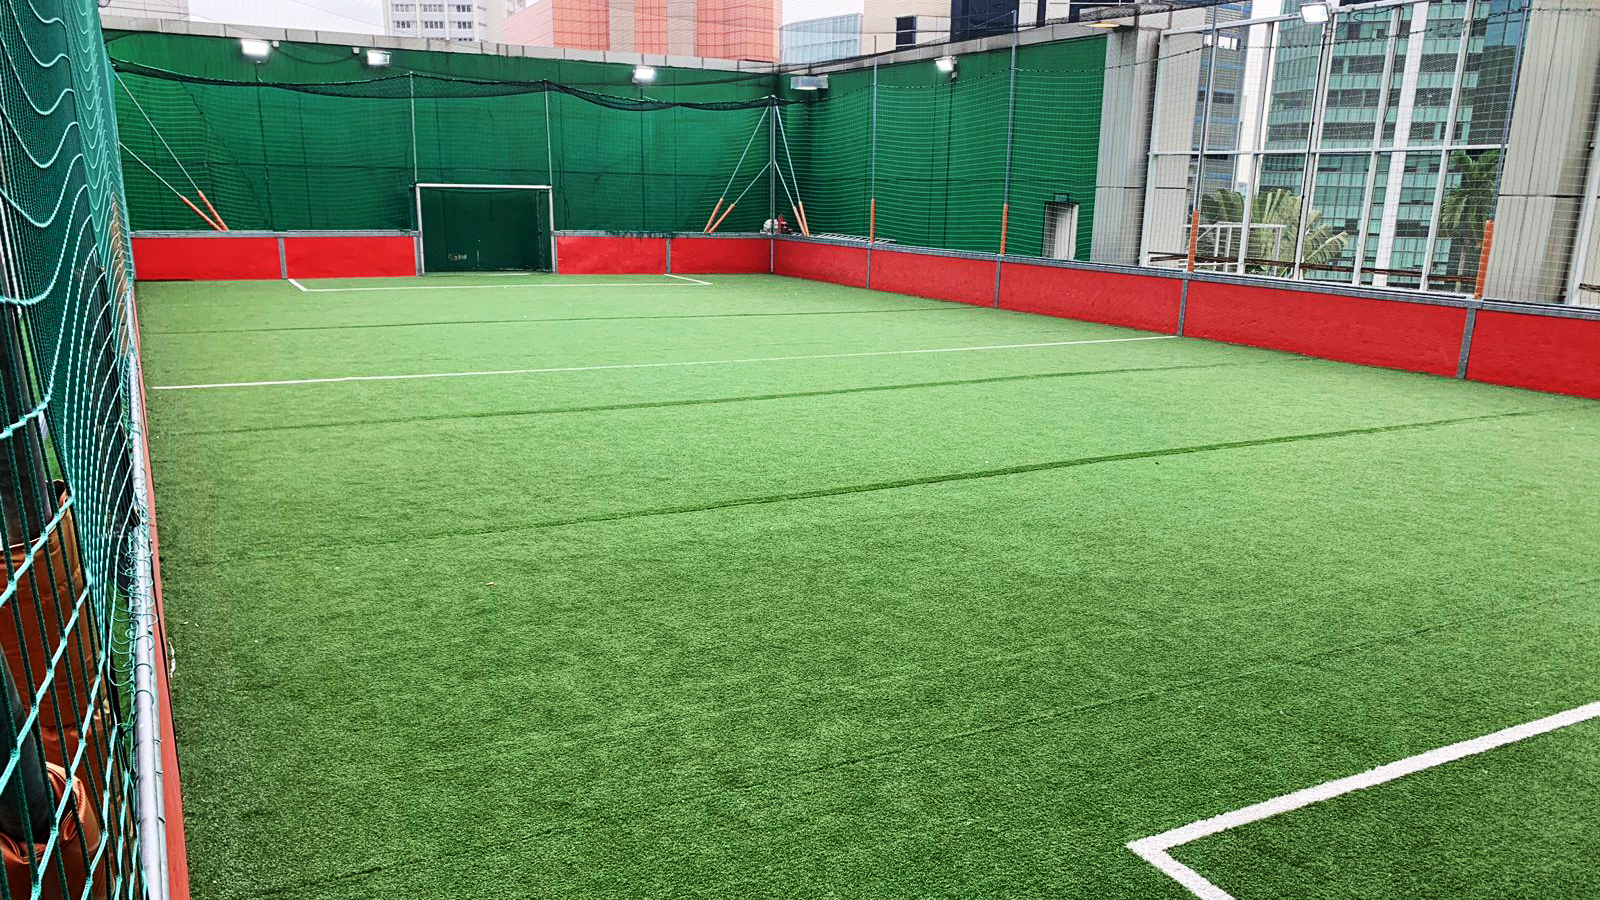 The pitch is available for bookings all day on Fridays, weekends and public holidays.